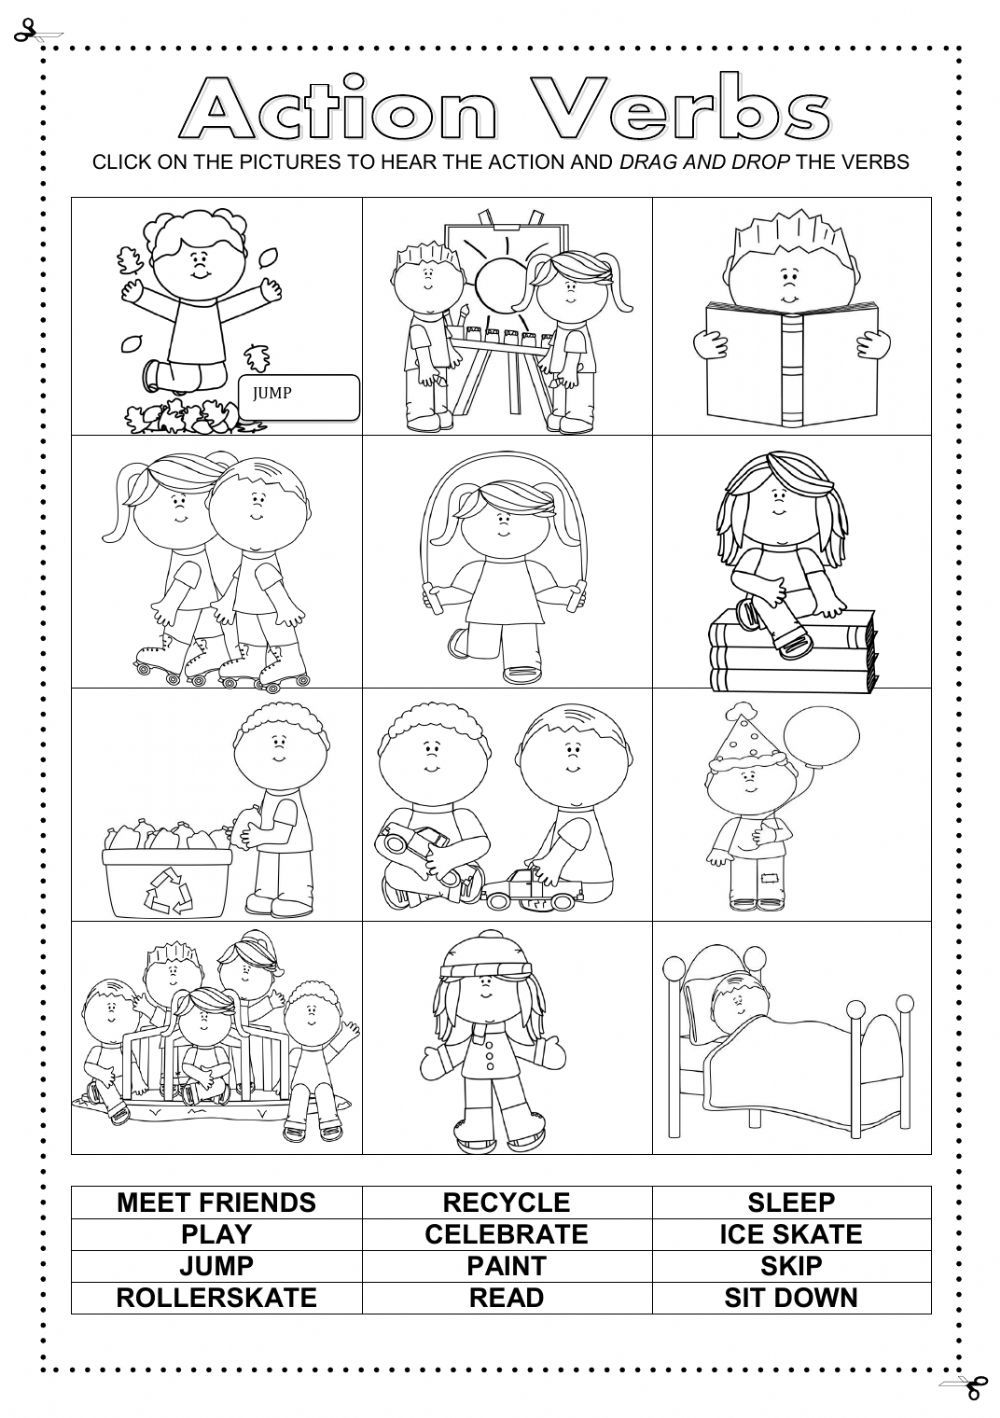 Free Printable Alphabet Worksheets For Pre-k Pdf Action Verbs Interactive And Downloadable Worksheet Check Your  Spring Tracing Worksheets Pdf with Free Time Activities Worksheet Action Verbs Interactive And Downloadable Worksheet Check Your Answers  Online Or Send Them To Your Area Of Shapes Worksheet Excel